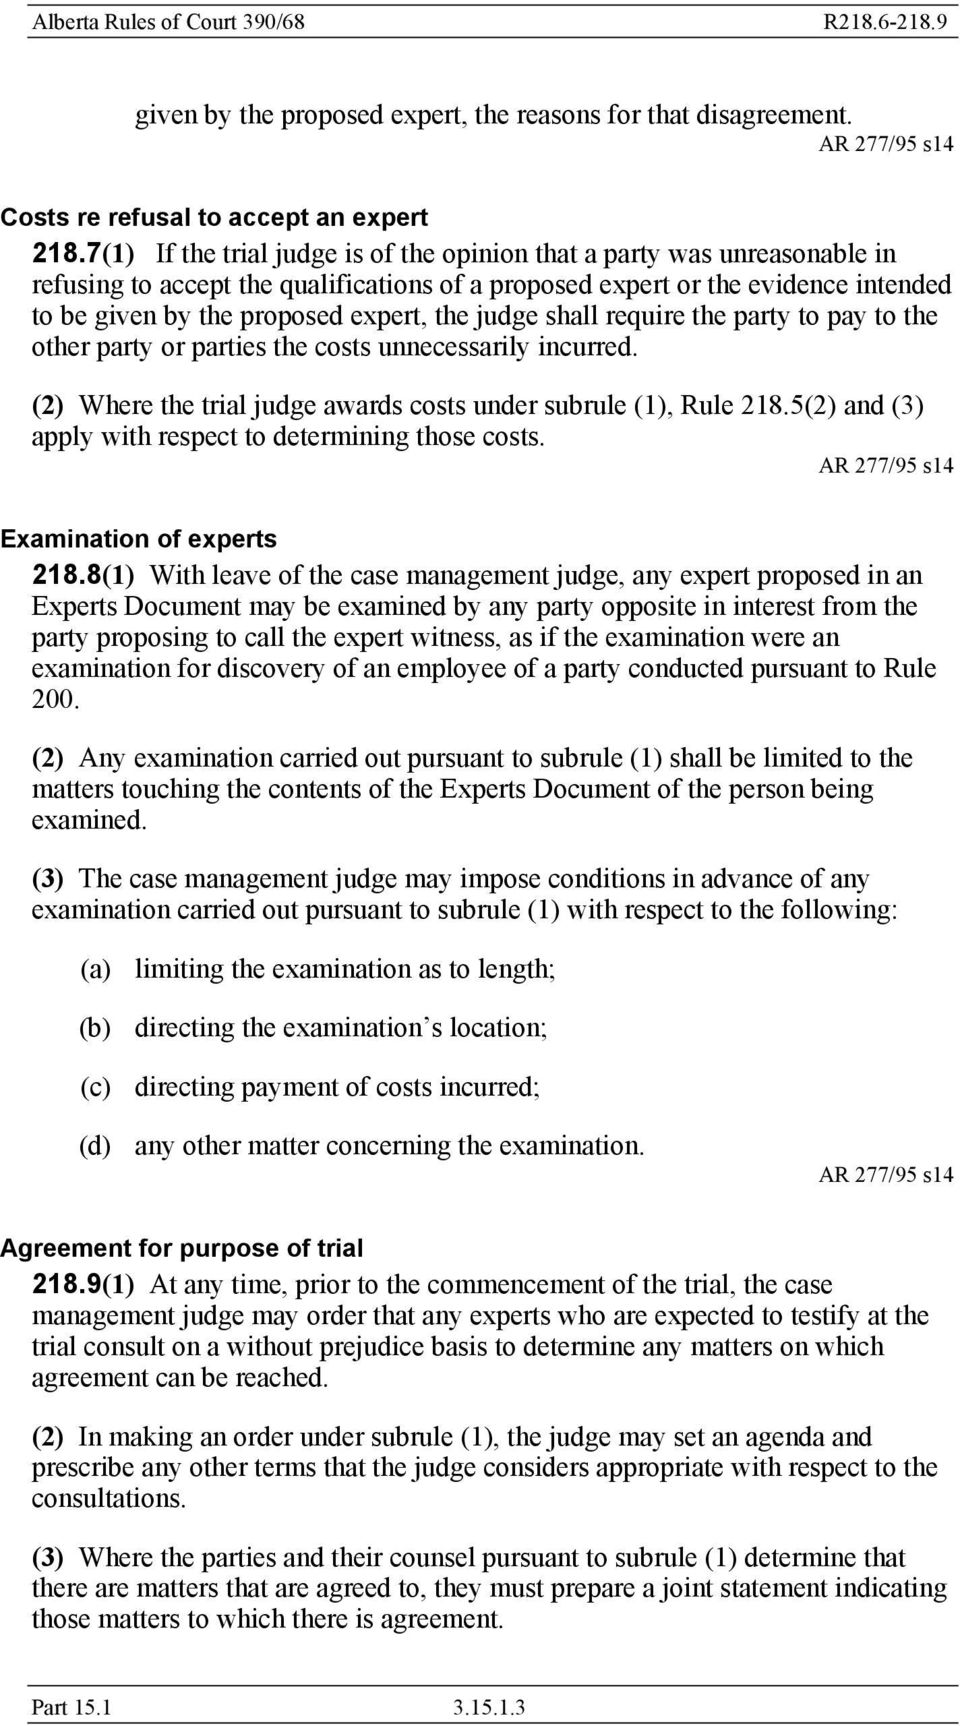 judge shall require the party to pay to the other party or parties the costs unnecessarily incurred. (2) Where the trial judge awards costs under subrule (1), Rule 218.